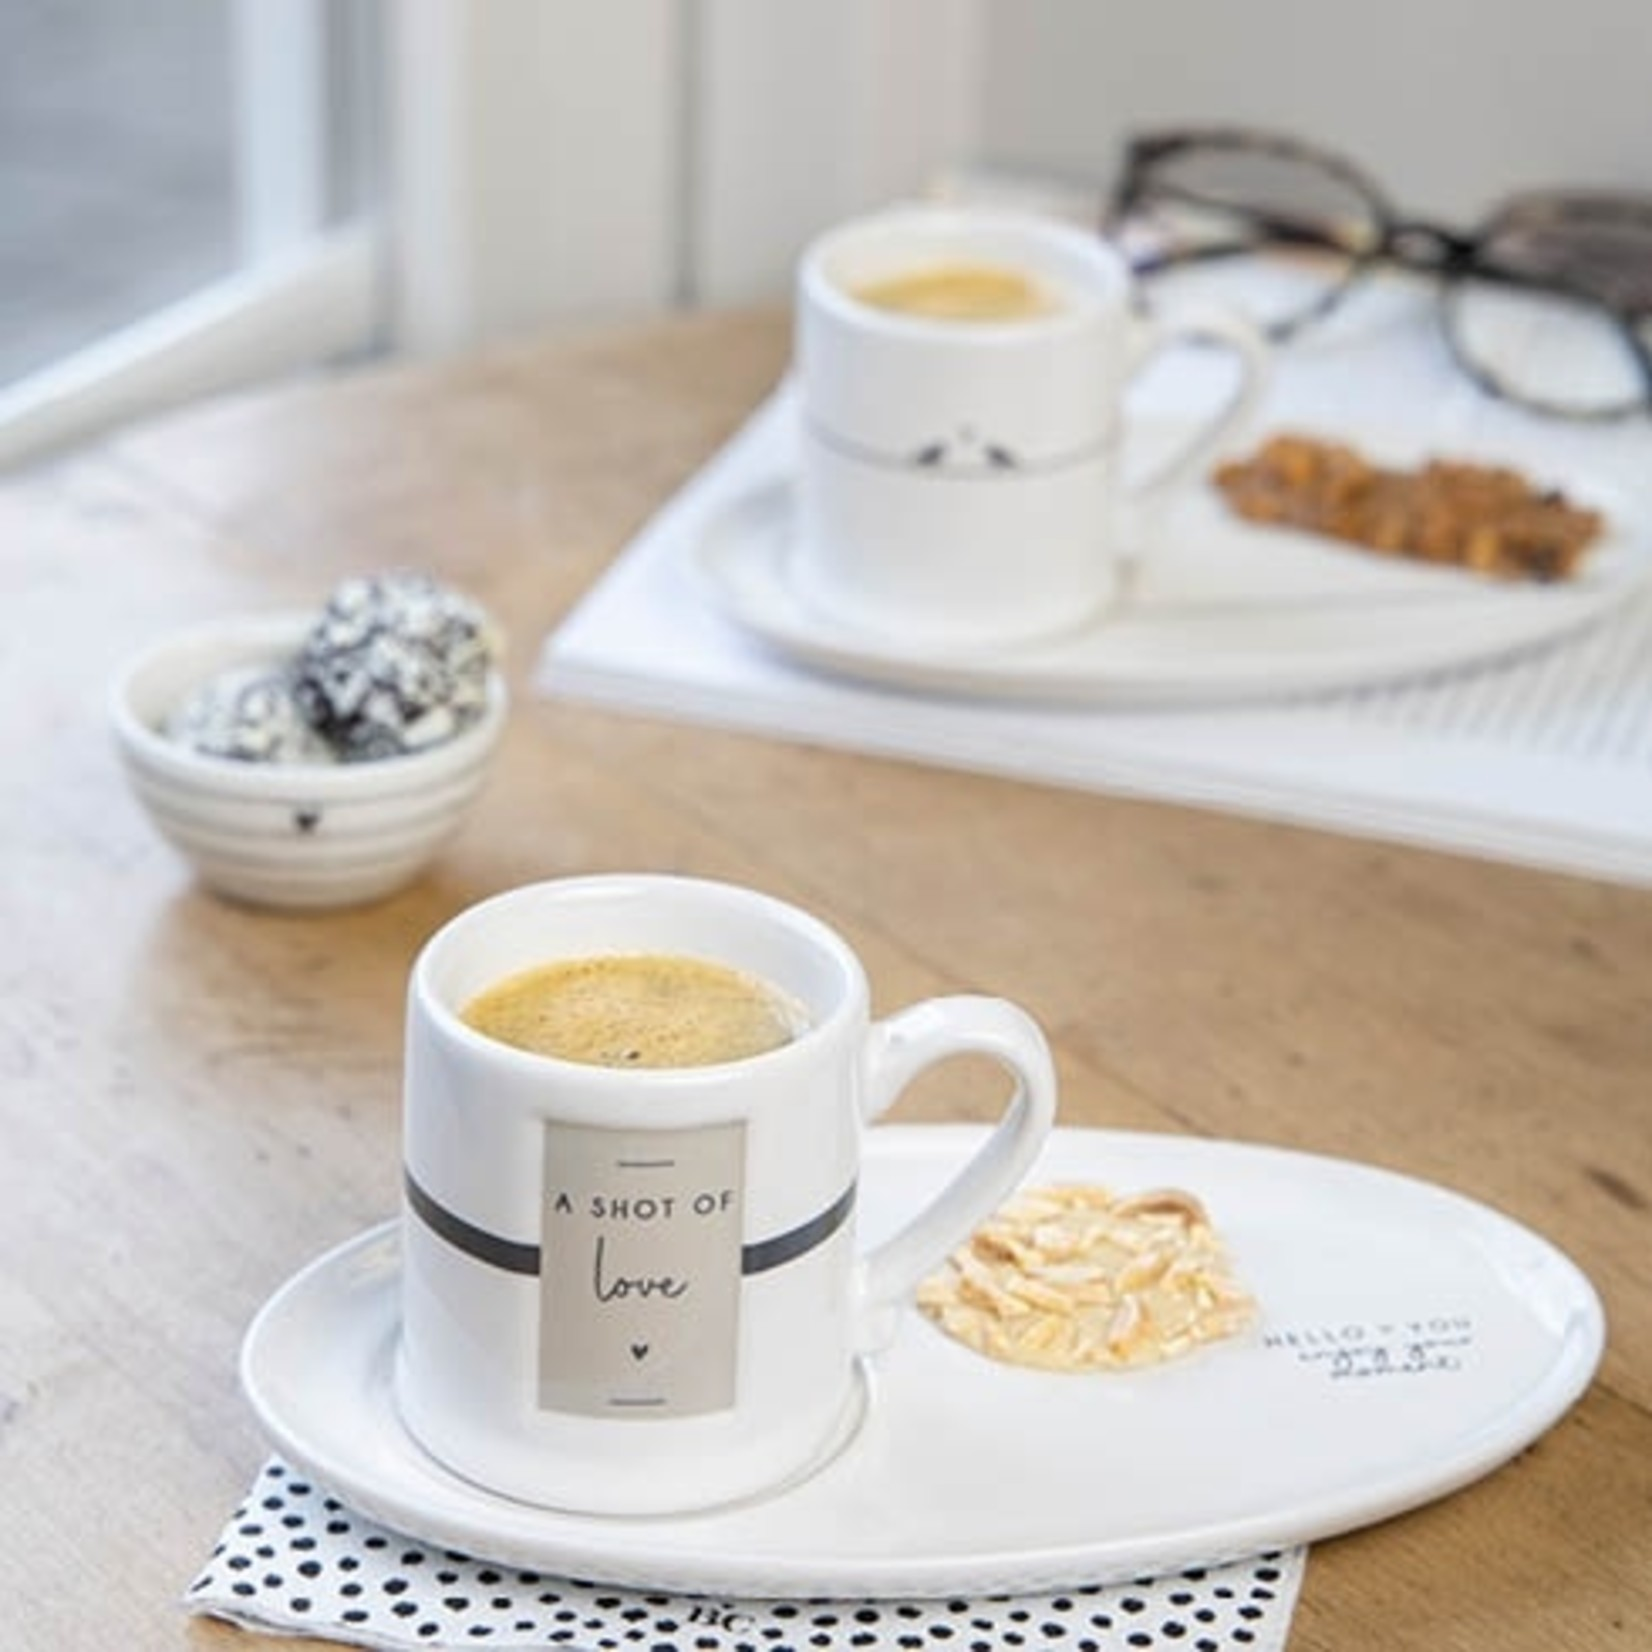 Bastion Collections Espresso Cup Shot of Love